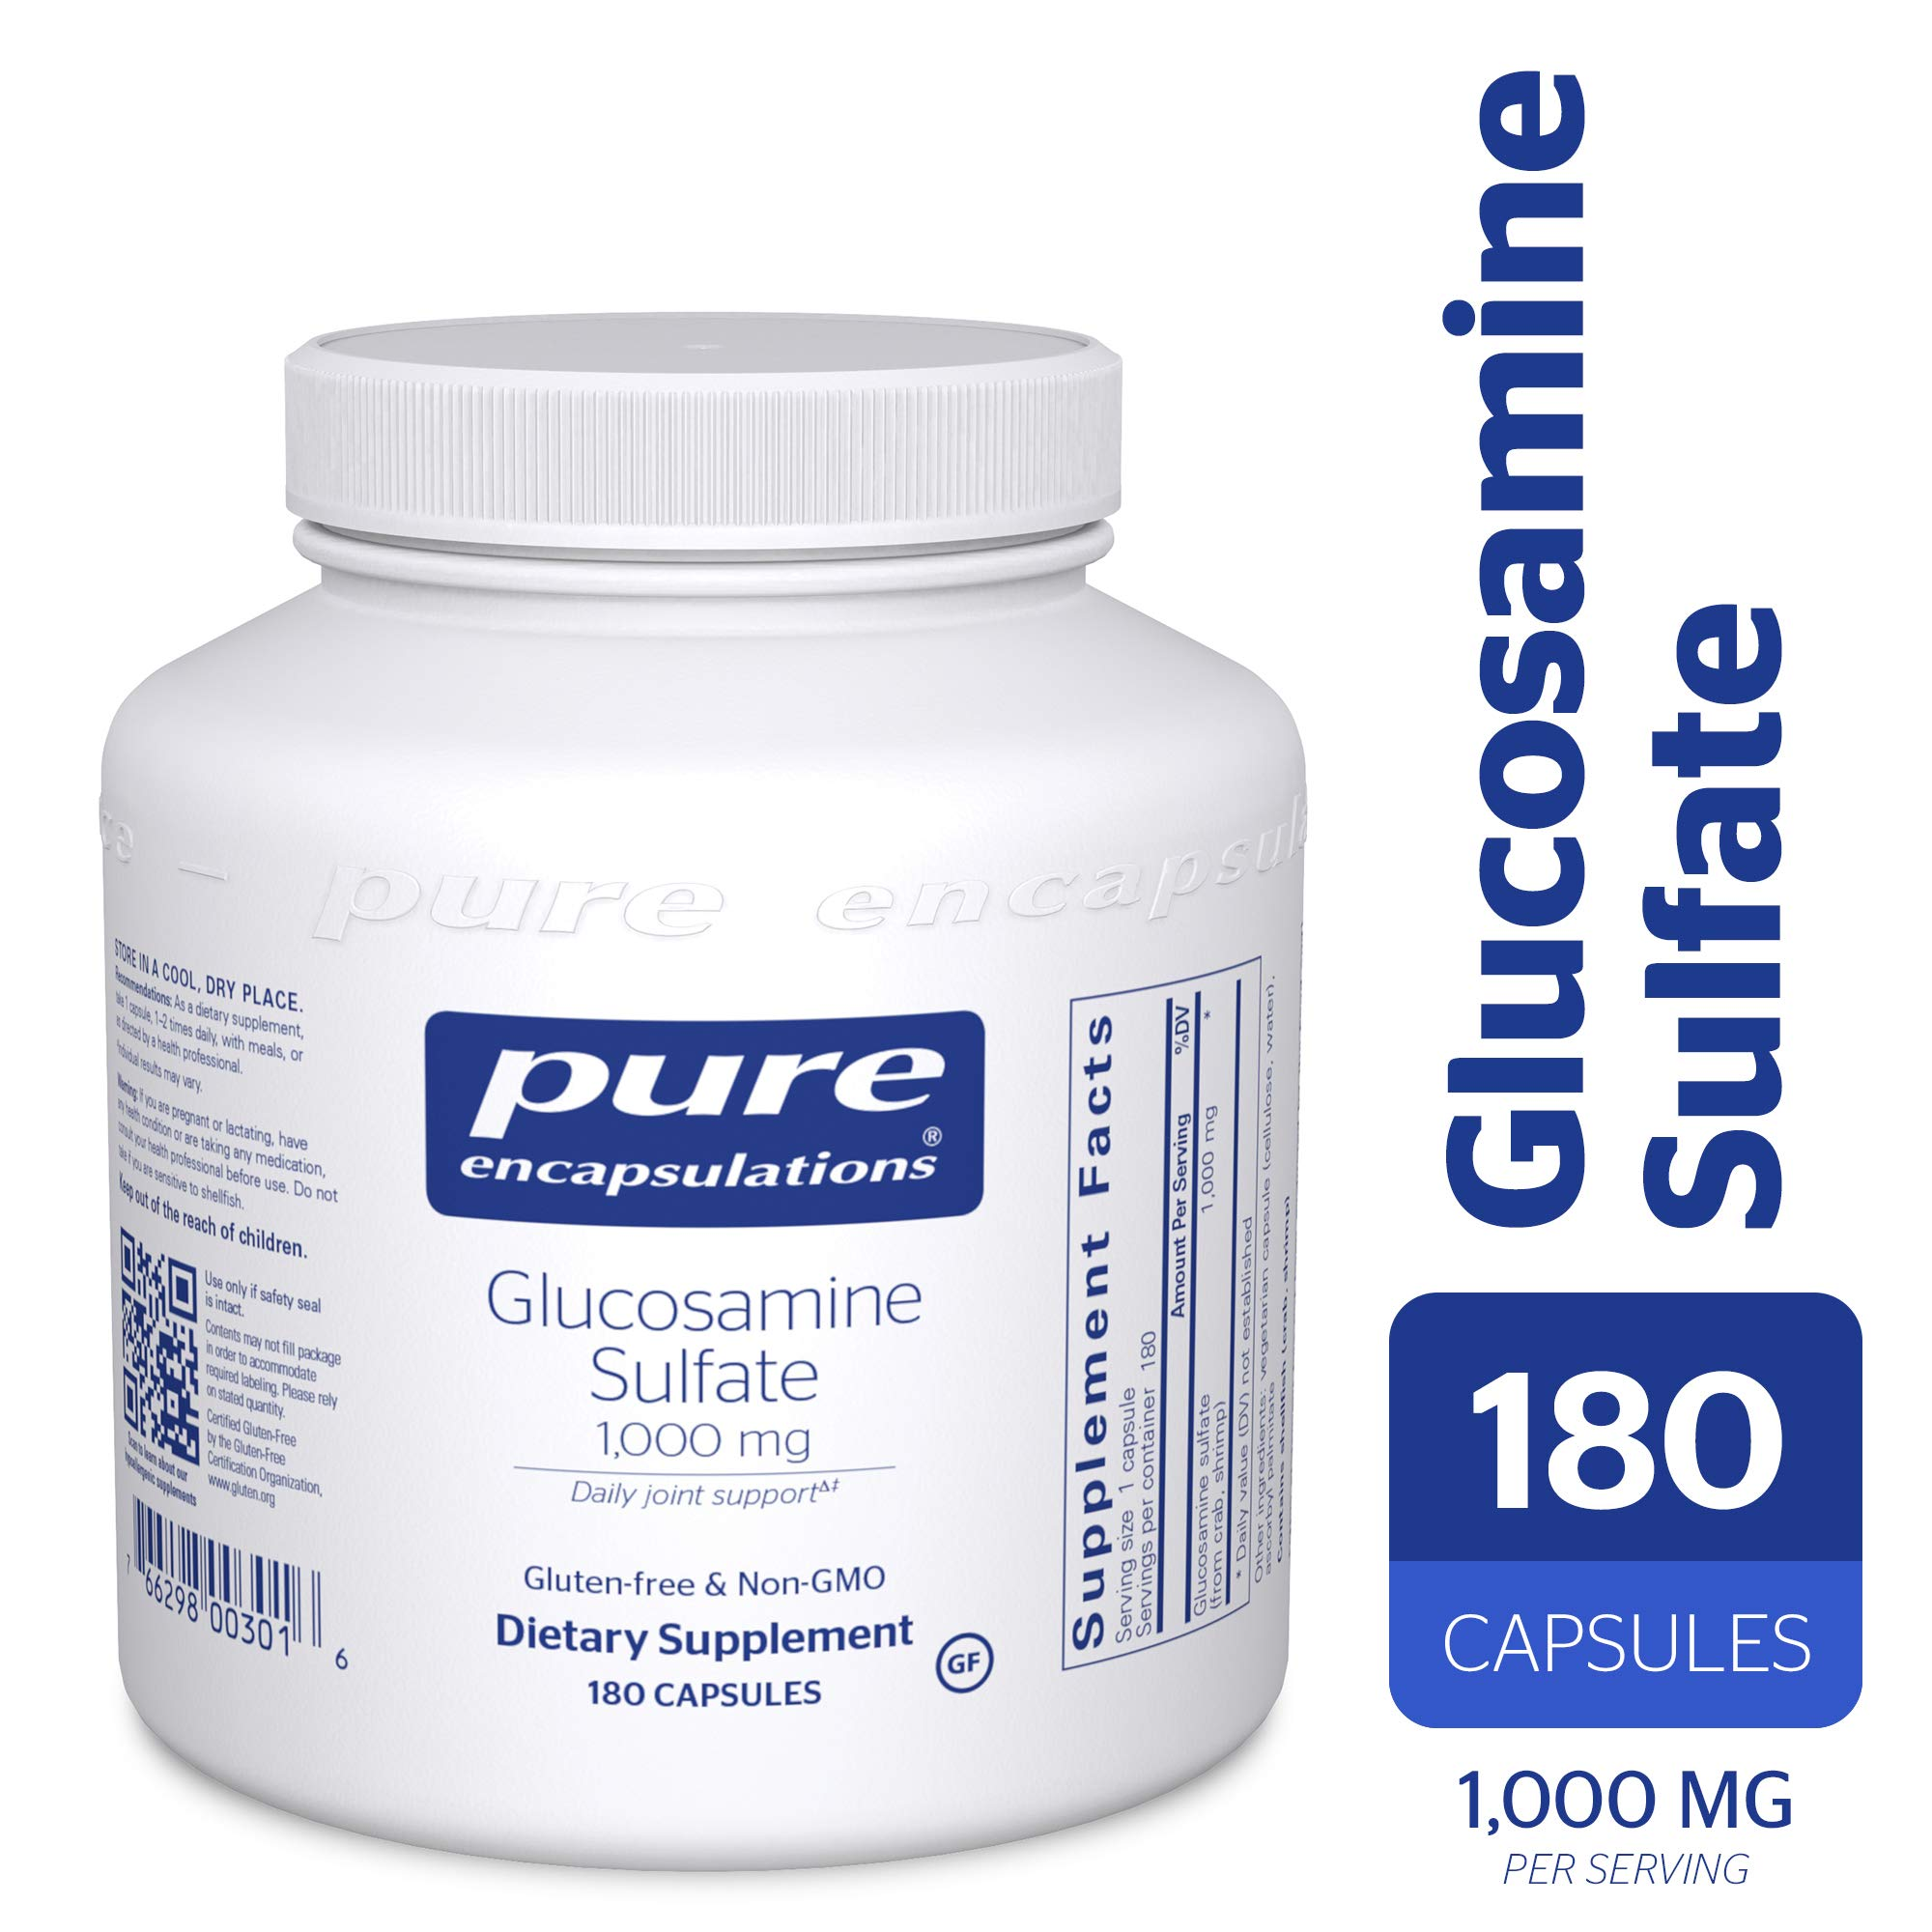 Pure Encapsulations - Glucosamine Sulfate 1000 mg - Dietary Supplement Supports Healthy Cartilage and Joint Function* - 180 Capsules